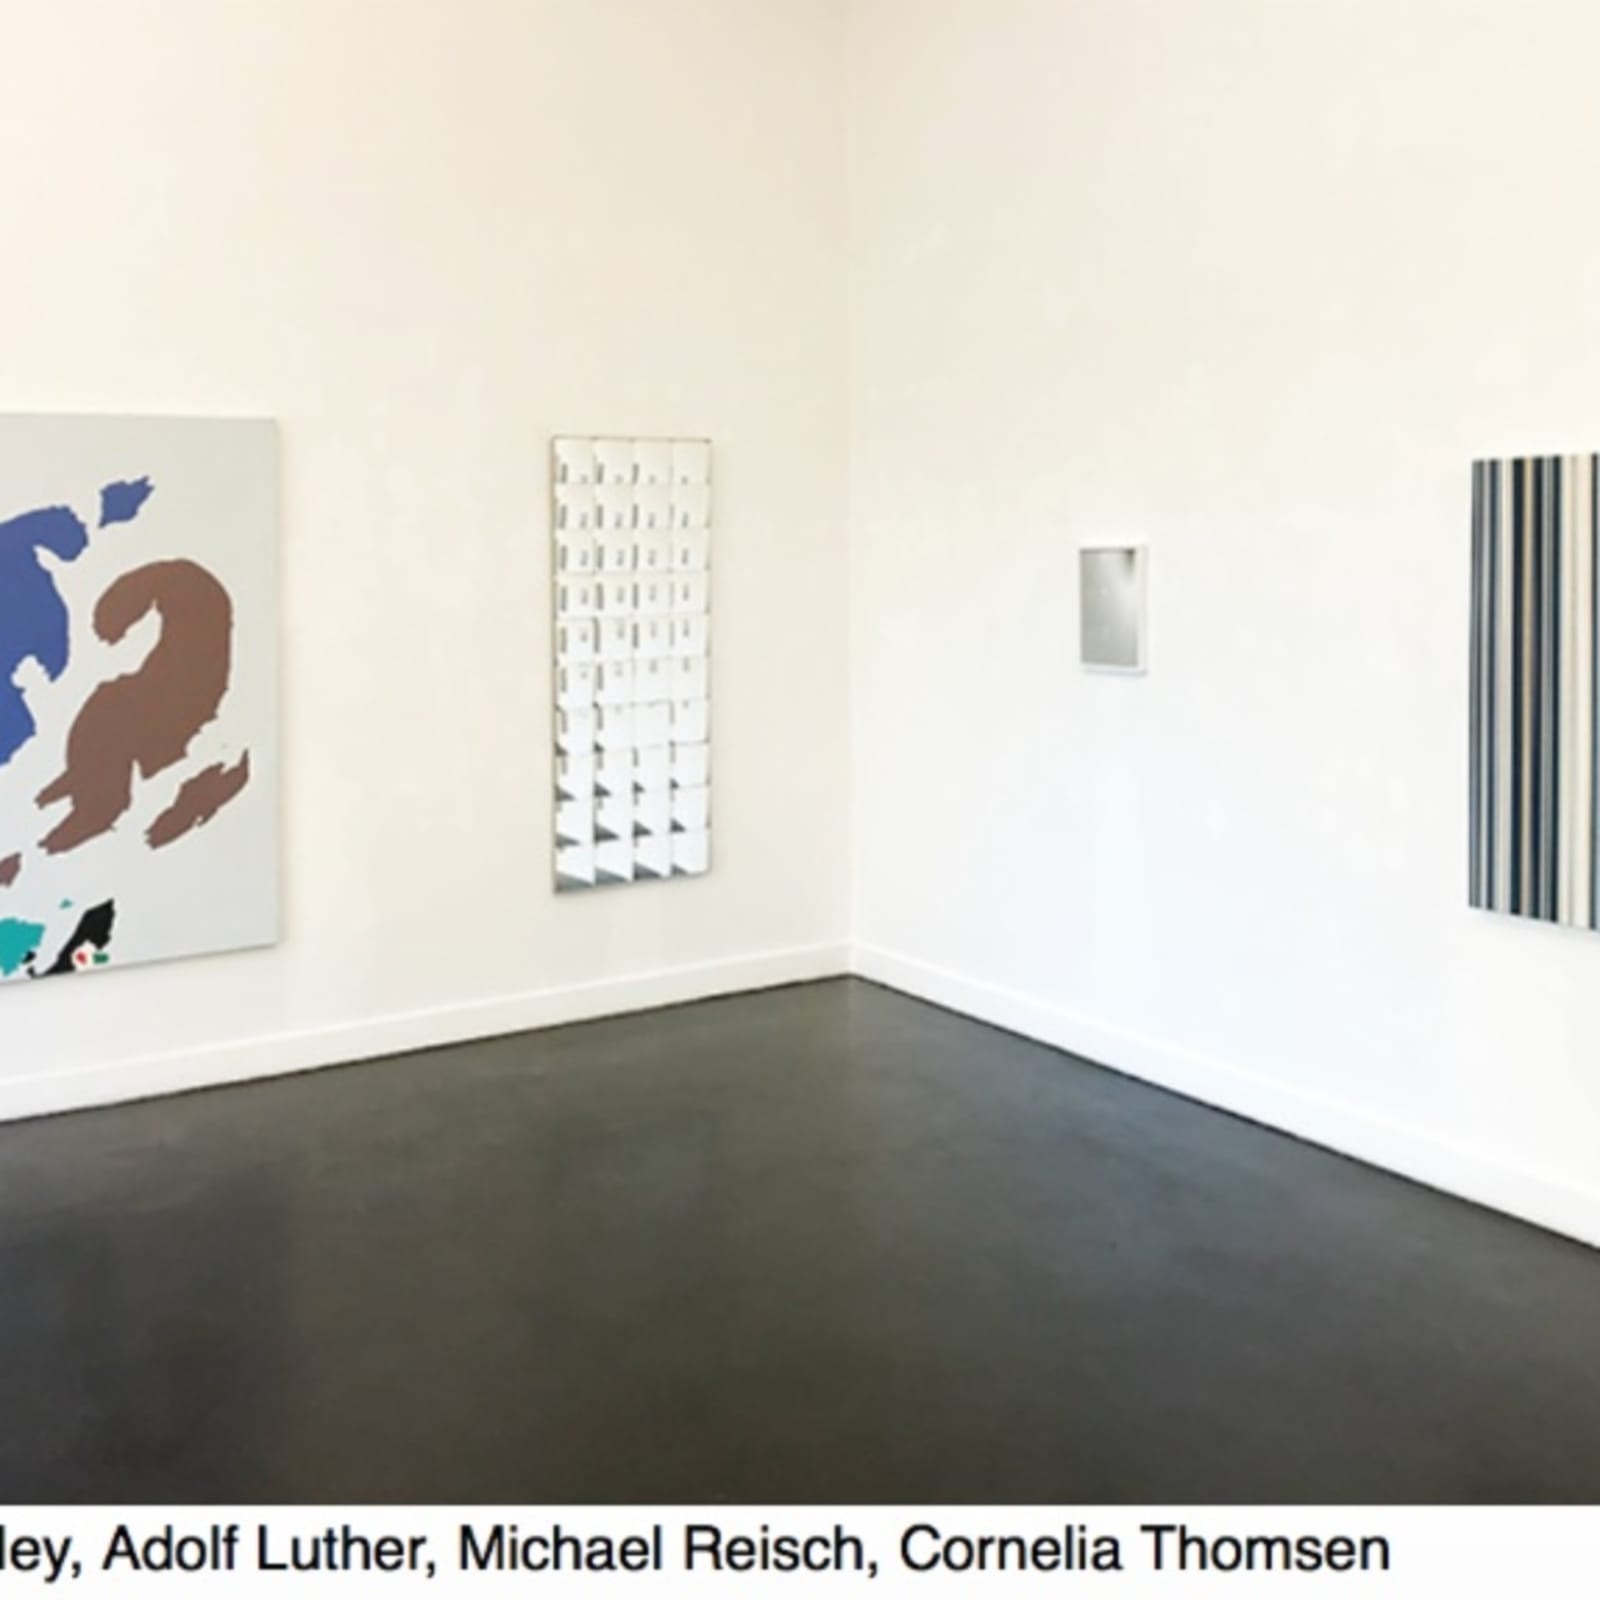 Group Exhibition at Felix Ringel Gallery in Duesseldorf, Germany